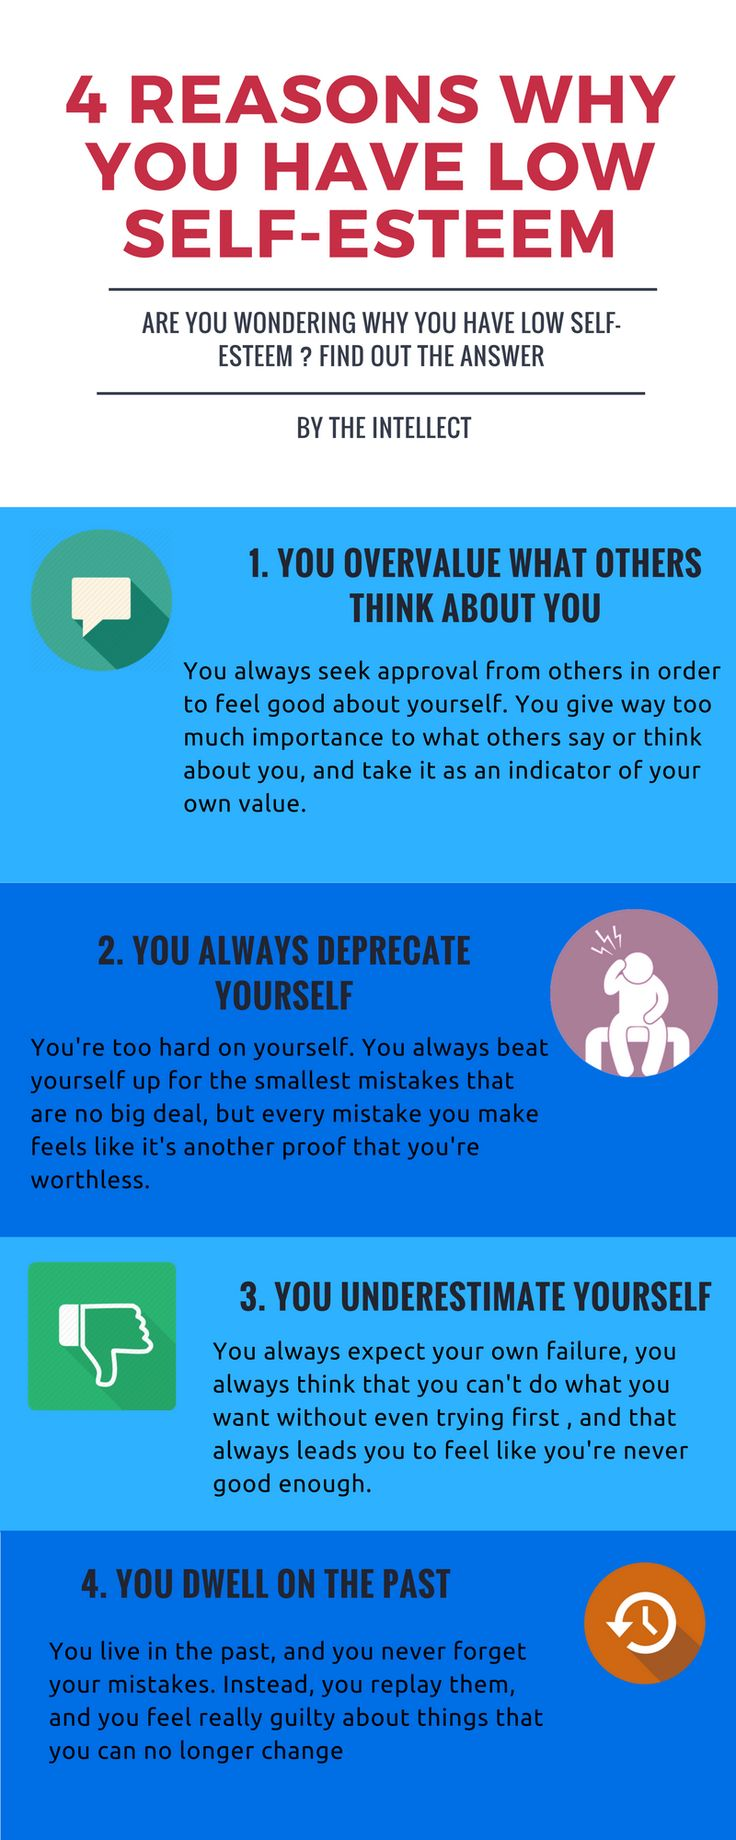 do you have a low self esteem Self-esteem is how you view yourself it's your personal evaluation of your strengths and weaknesses people who have healthy self-esteem can appreciate their strengths and be compassionate for any limitations they have.